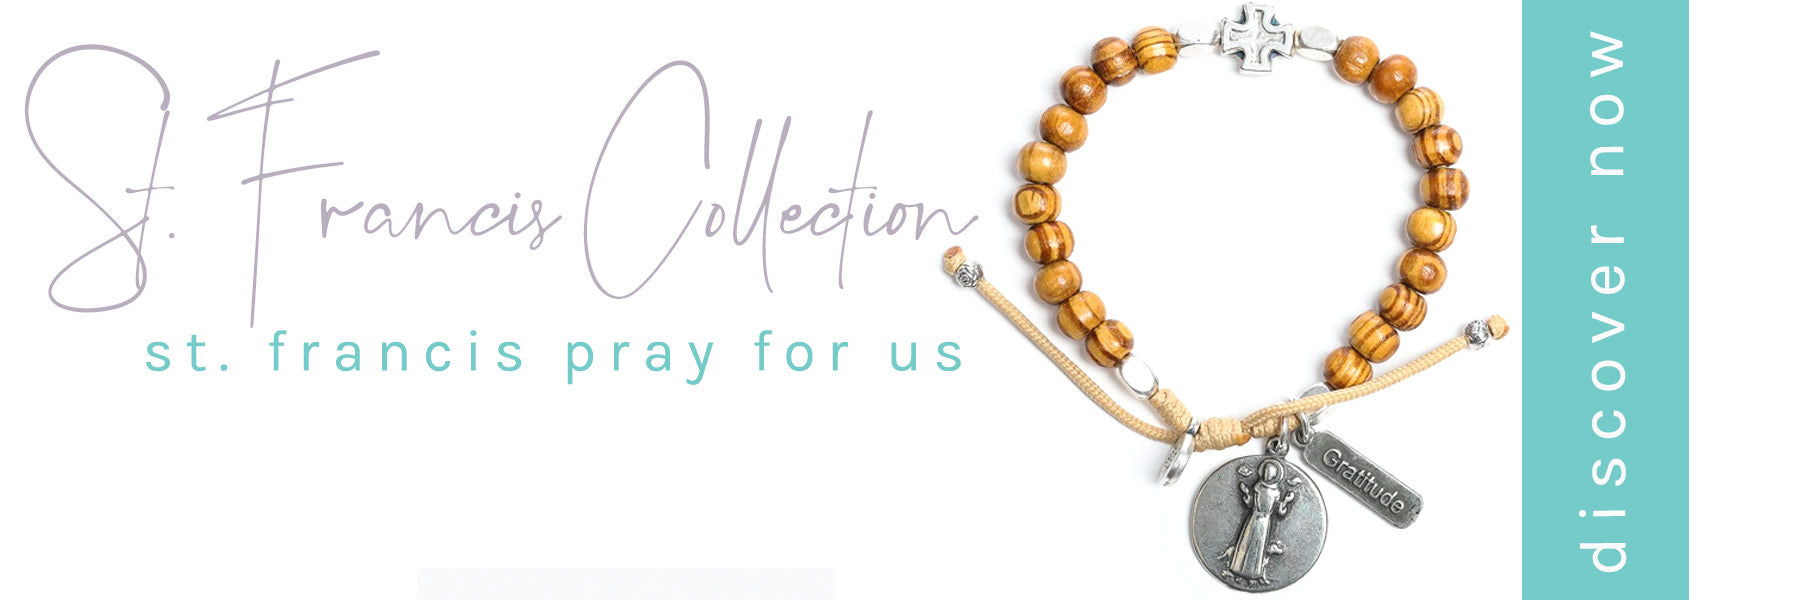 Shop the St. Francis Jewelry Collection